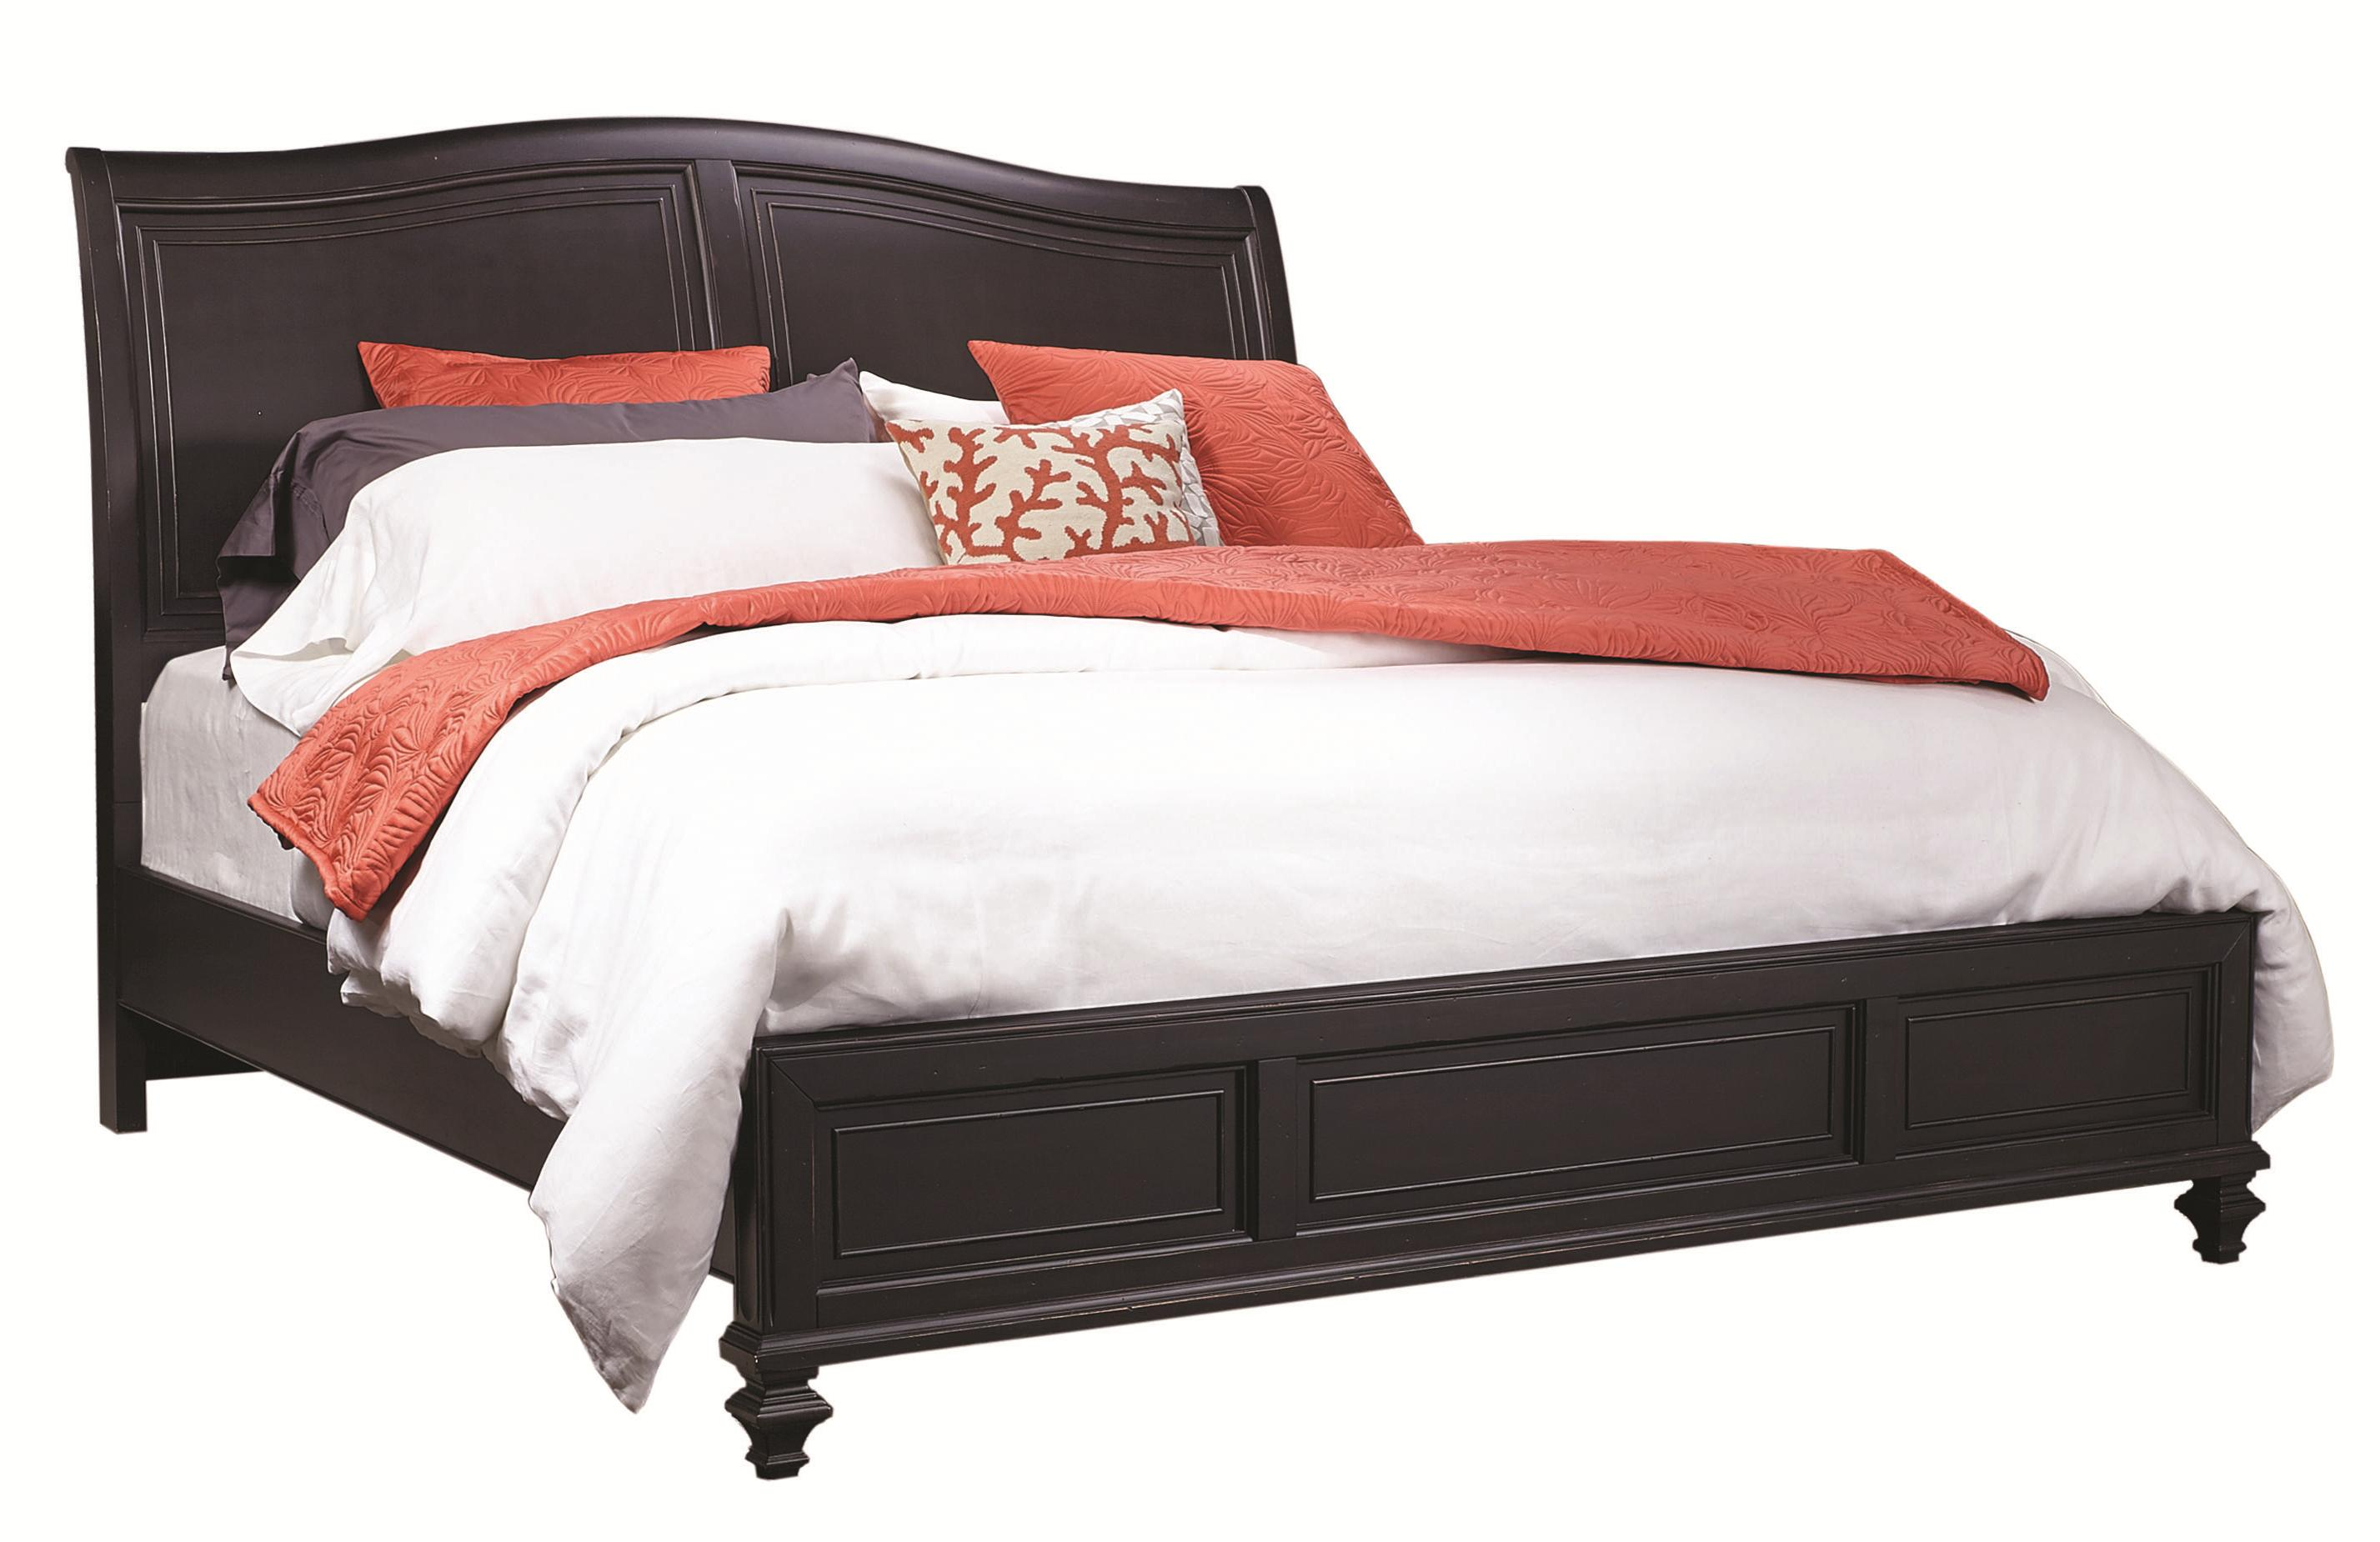 Aspenhome Ravenwood California King Bed - Item Number: I65-404+407+410